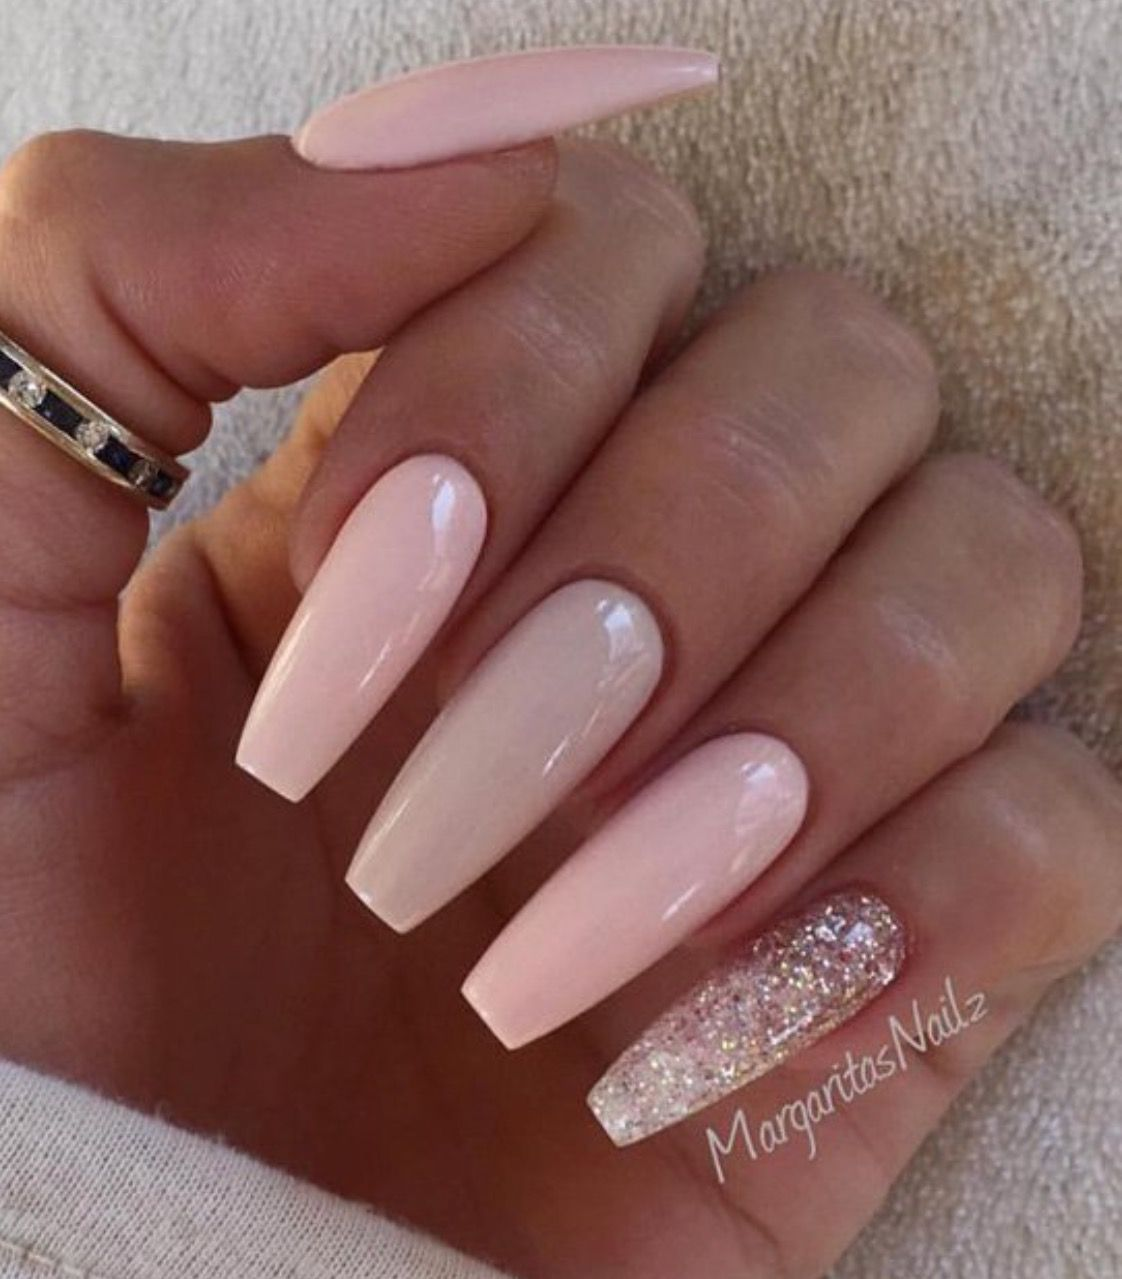 Pin von heather geronsin auf nails | Pinterest | Nagelschere ...